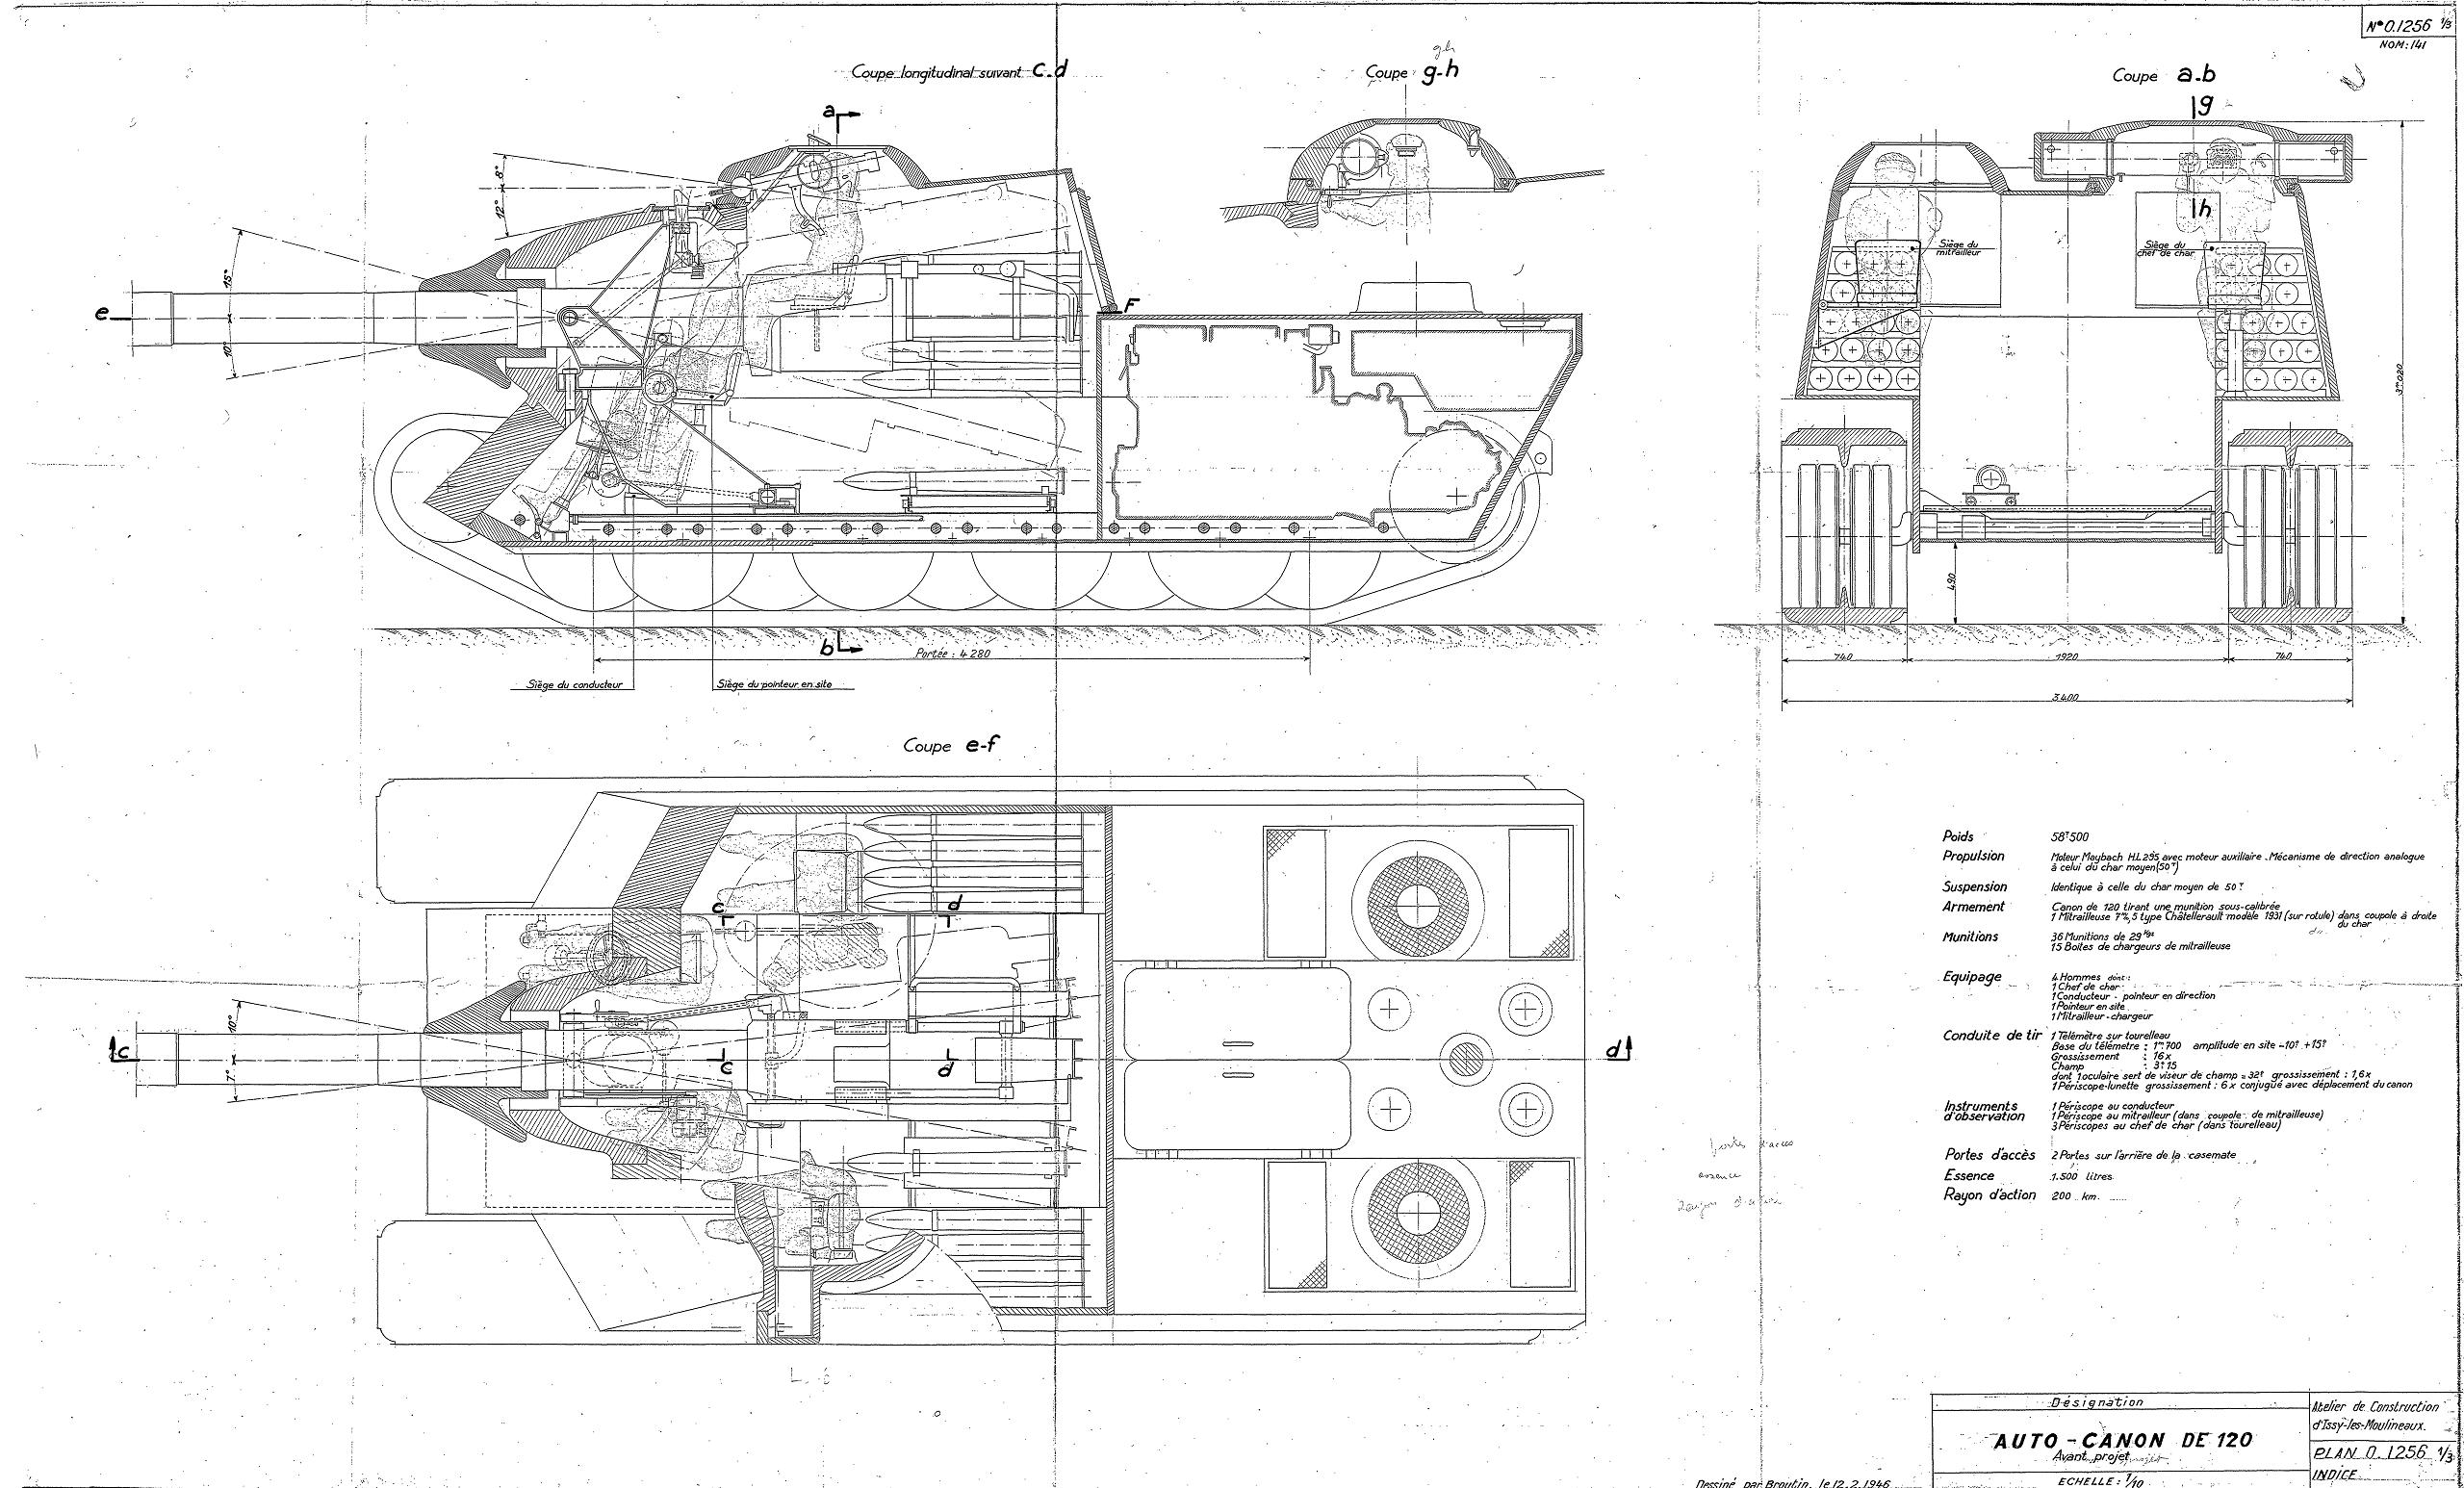 AMX AC mle blueprint